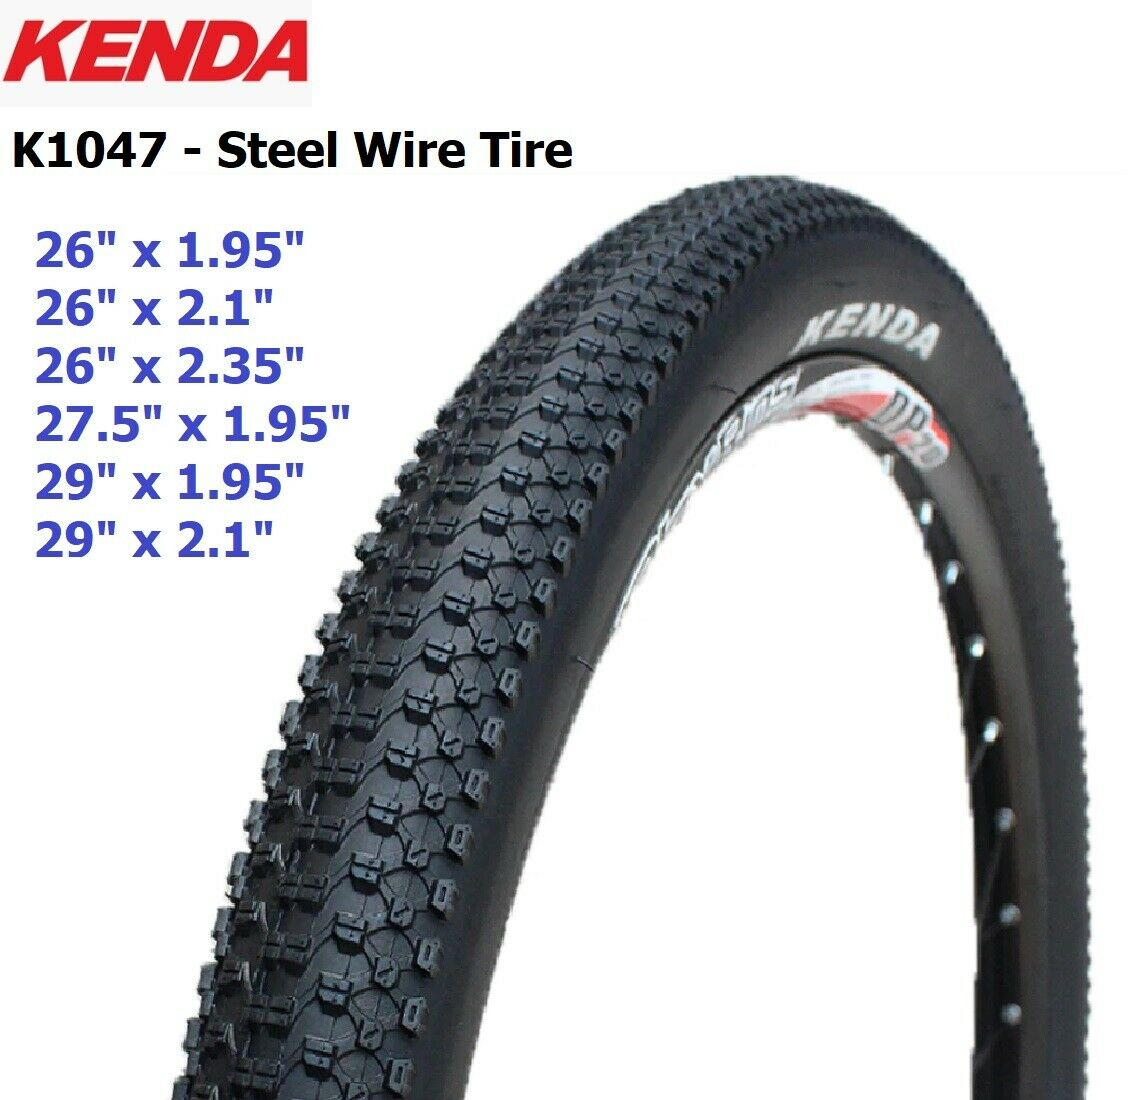 Kenda Kadre 27.5 x 2.6 Clincher Wire Mountain Bike Black Tire 30tpi NEW